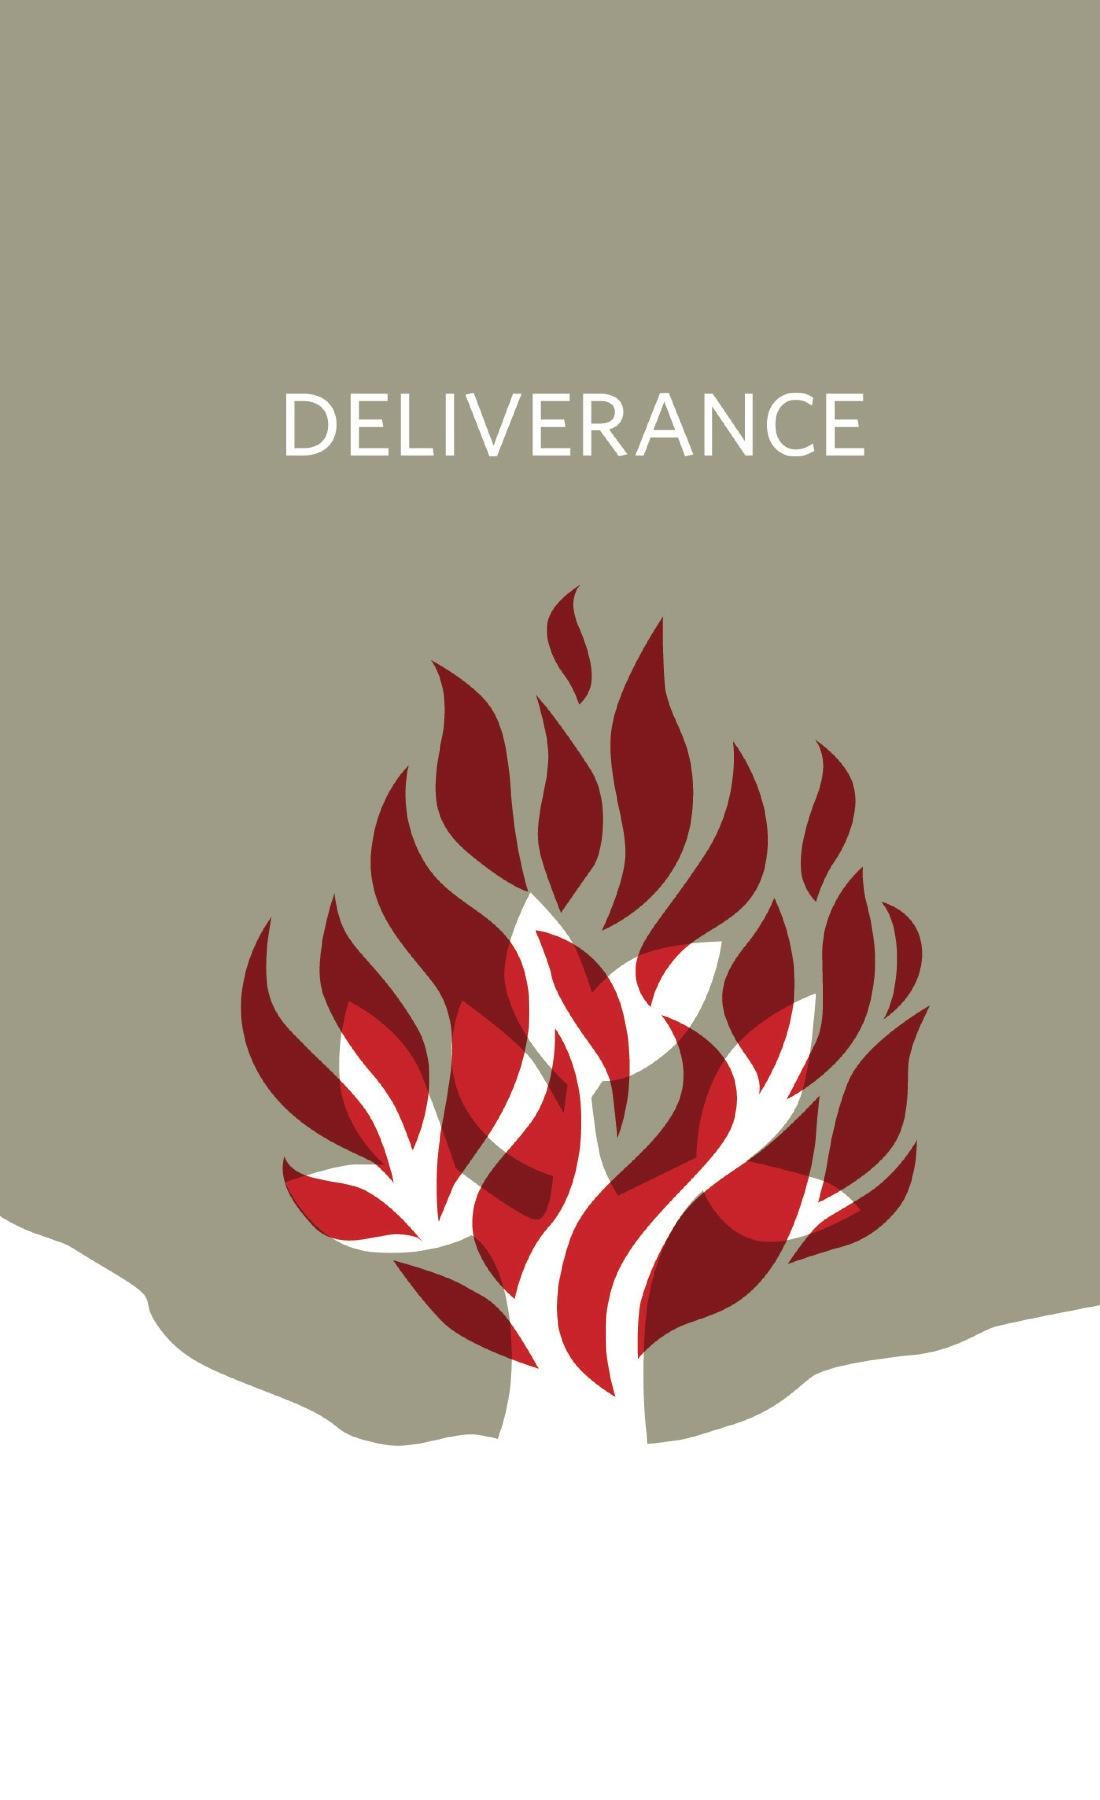 act2_wk4_deliverance.jpeg